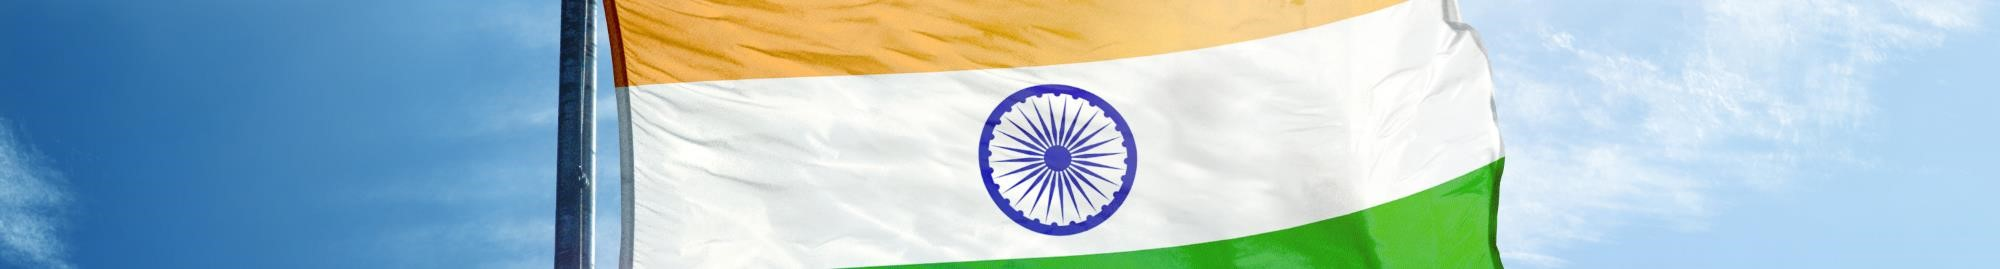 Enhancing air quality emissions standards in India